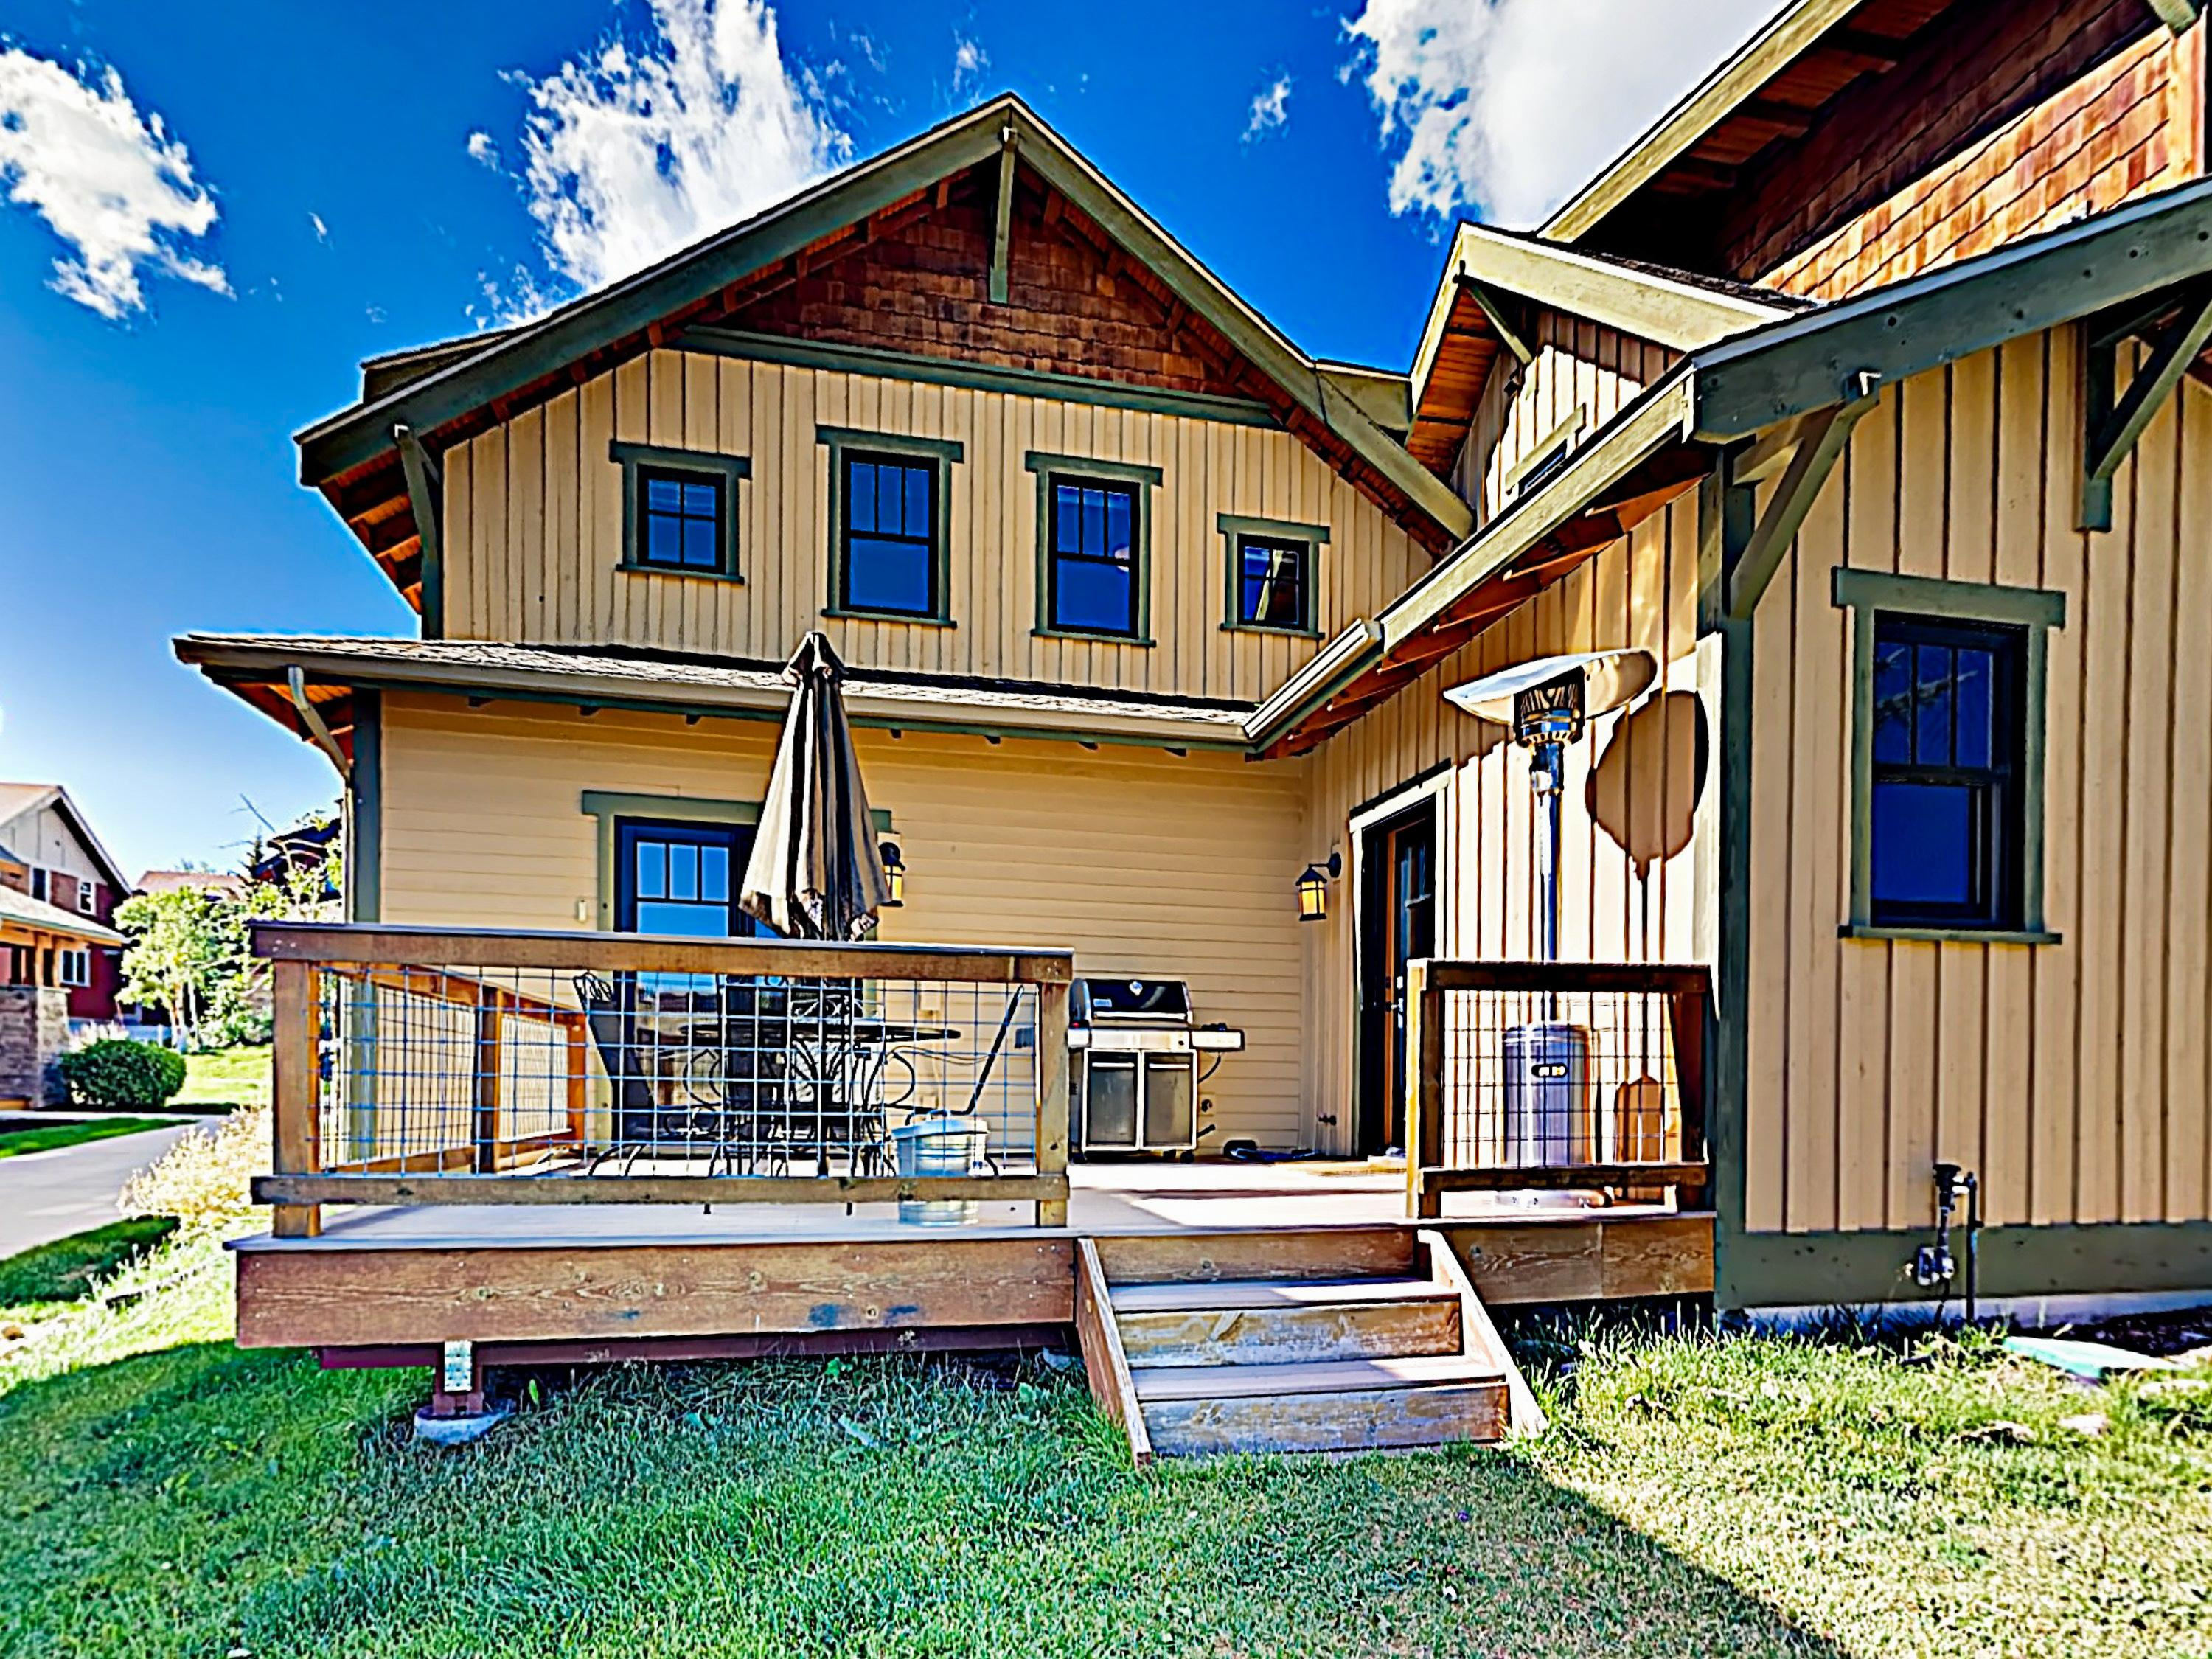 This Fraser cottage offers unspoiled Colorado splendor!